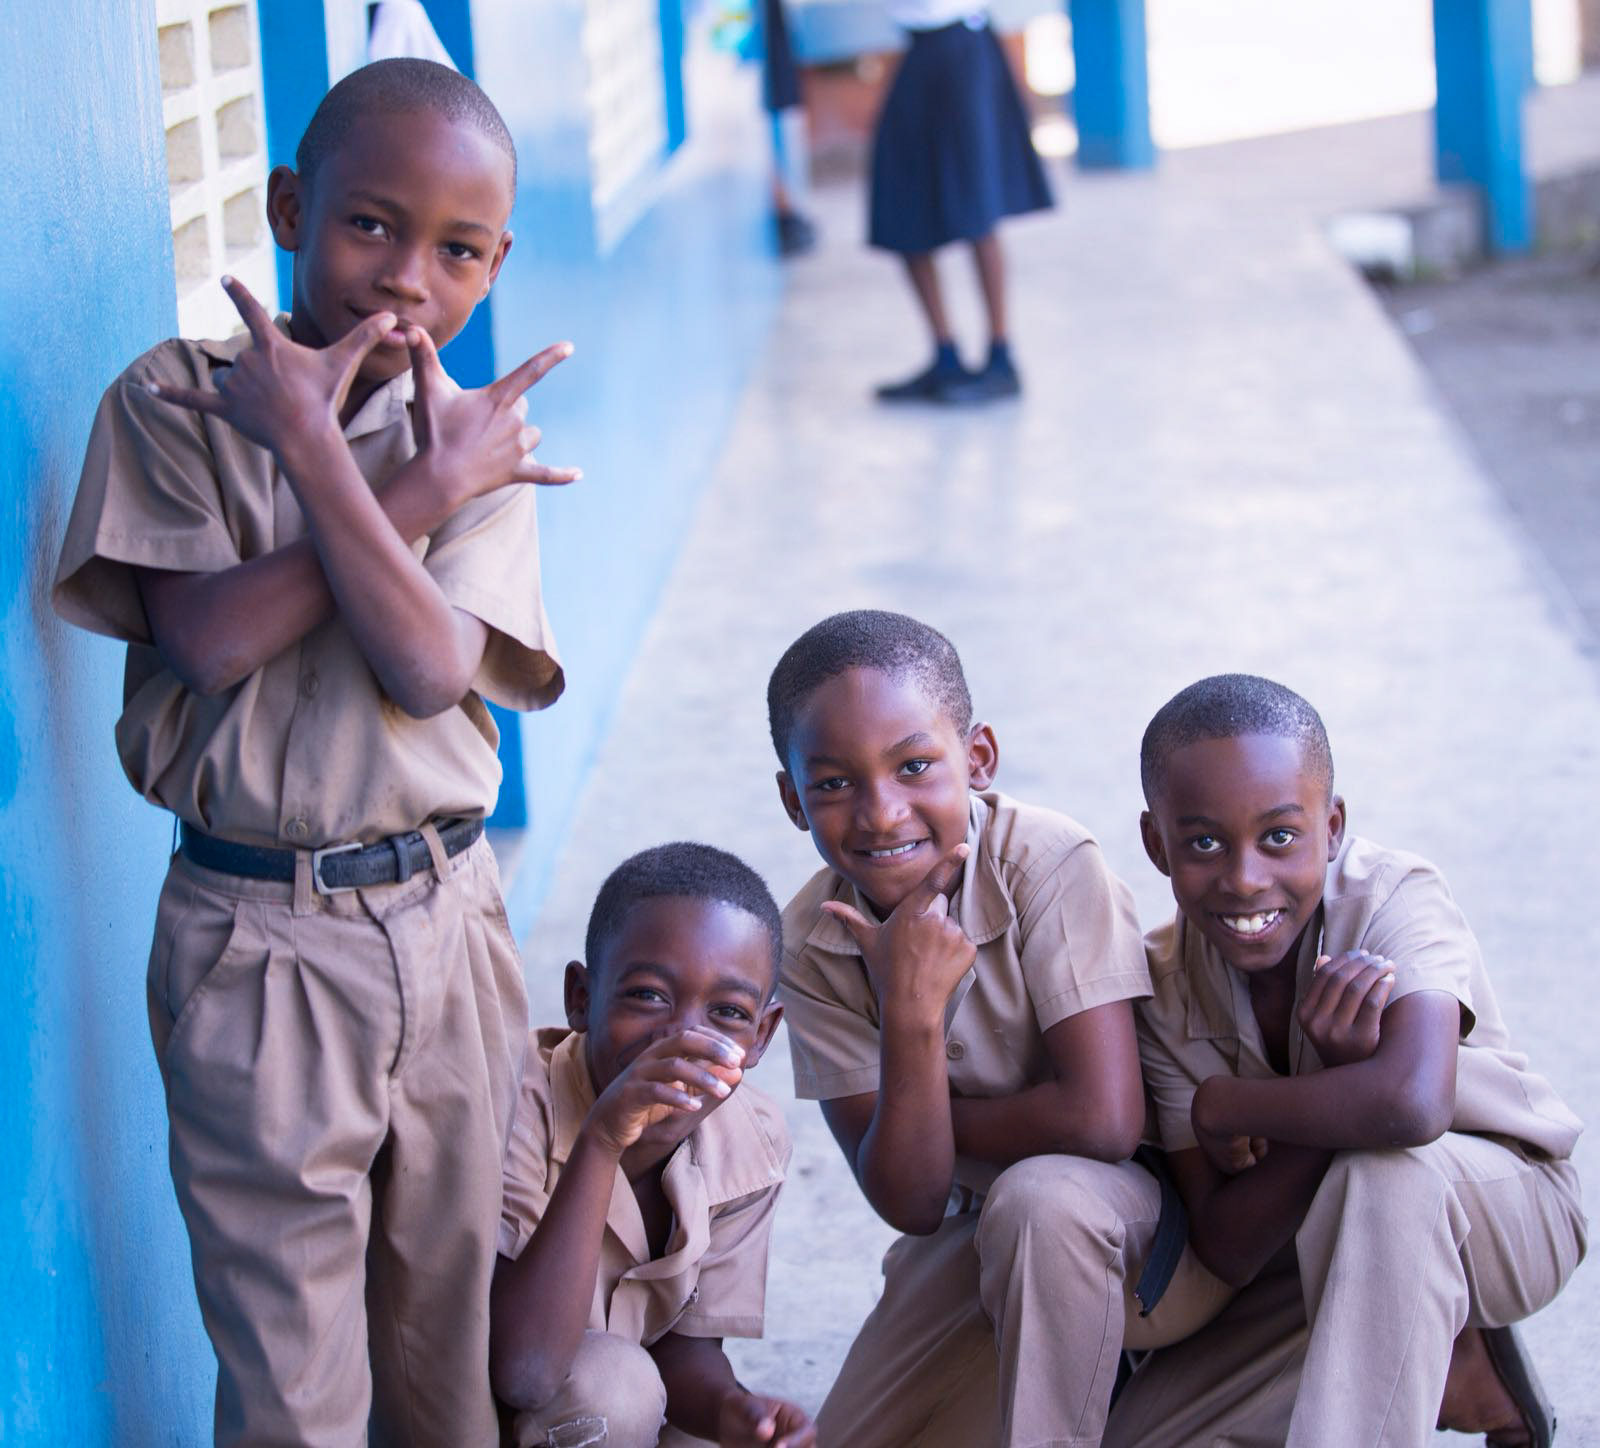 Students at Trinityville Primary in Jamaica     Photo Credit: Dwayne Morgan